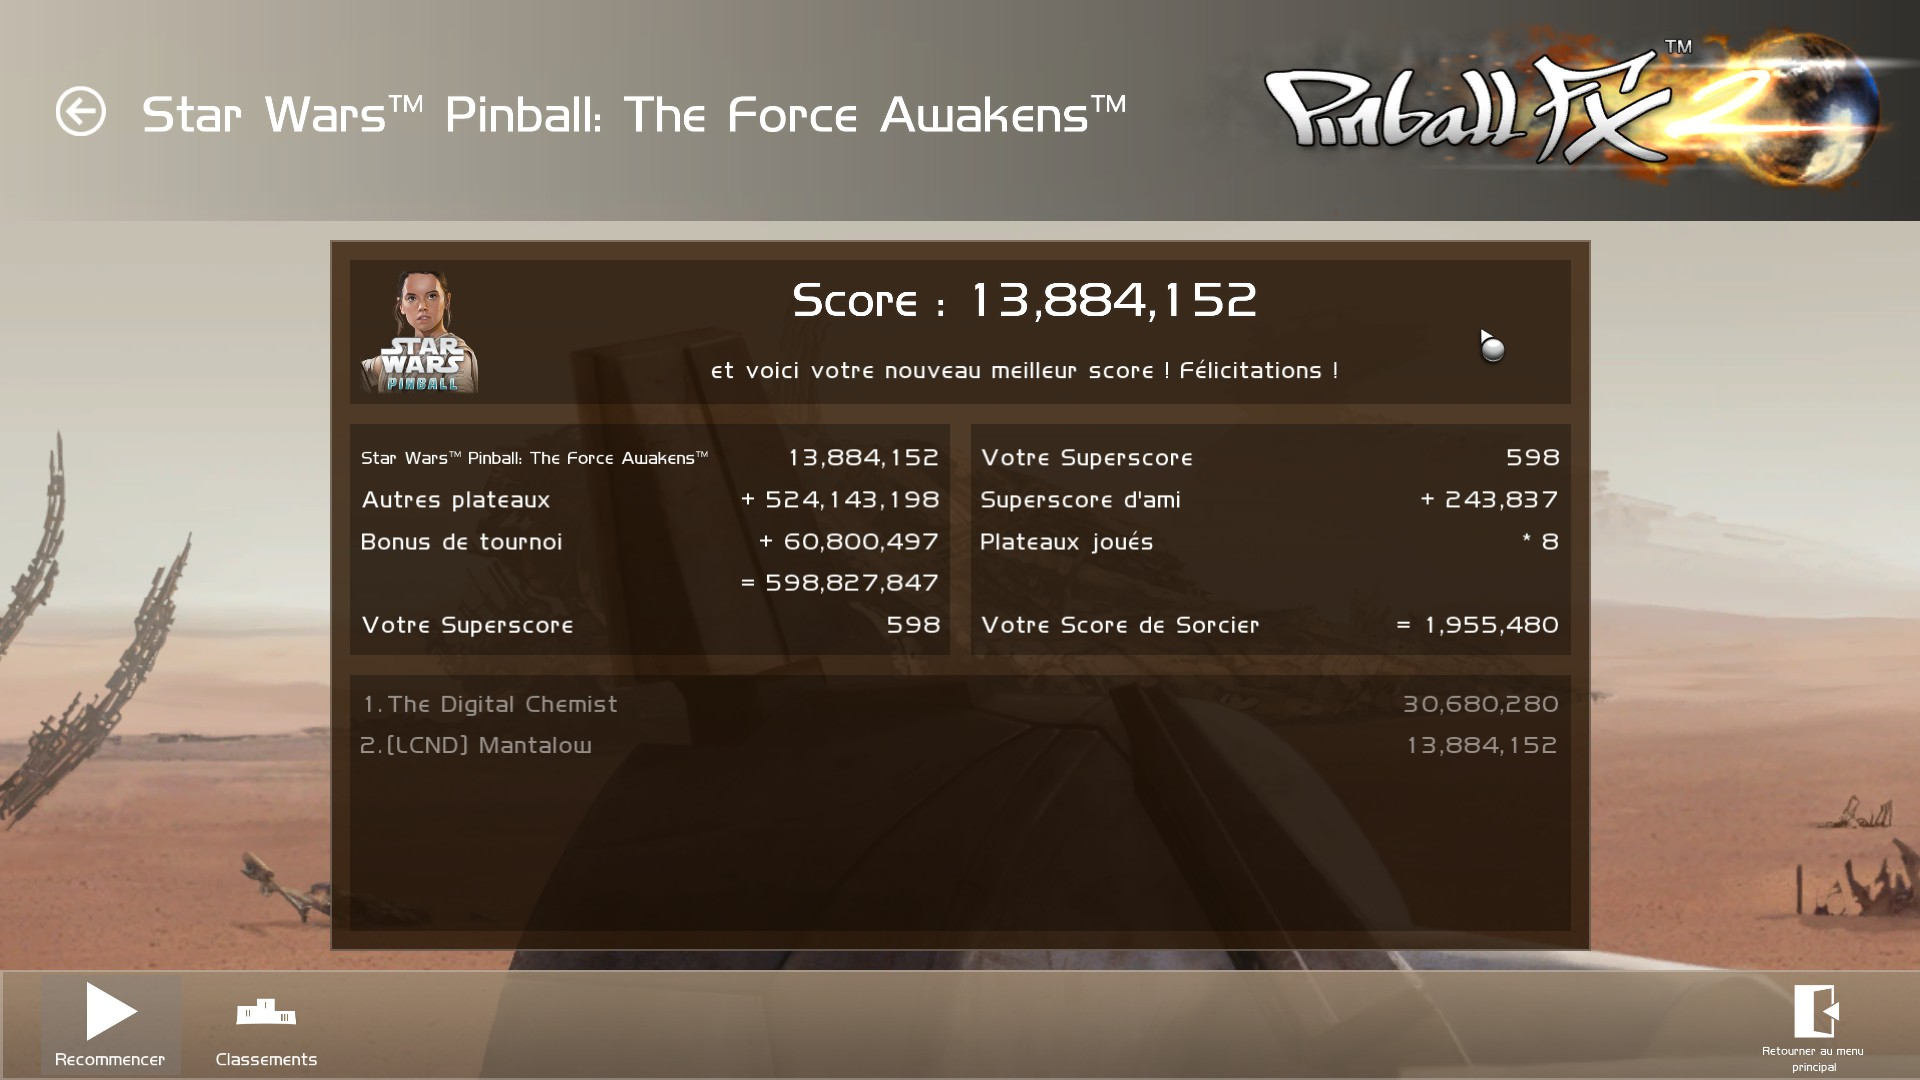 Mantalow: Pinball FX 2: Star Wars: The Force Awakens (PC) 13,884,152 points on 2016-01-12 11:43:25